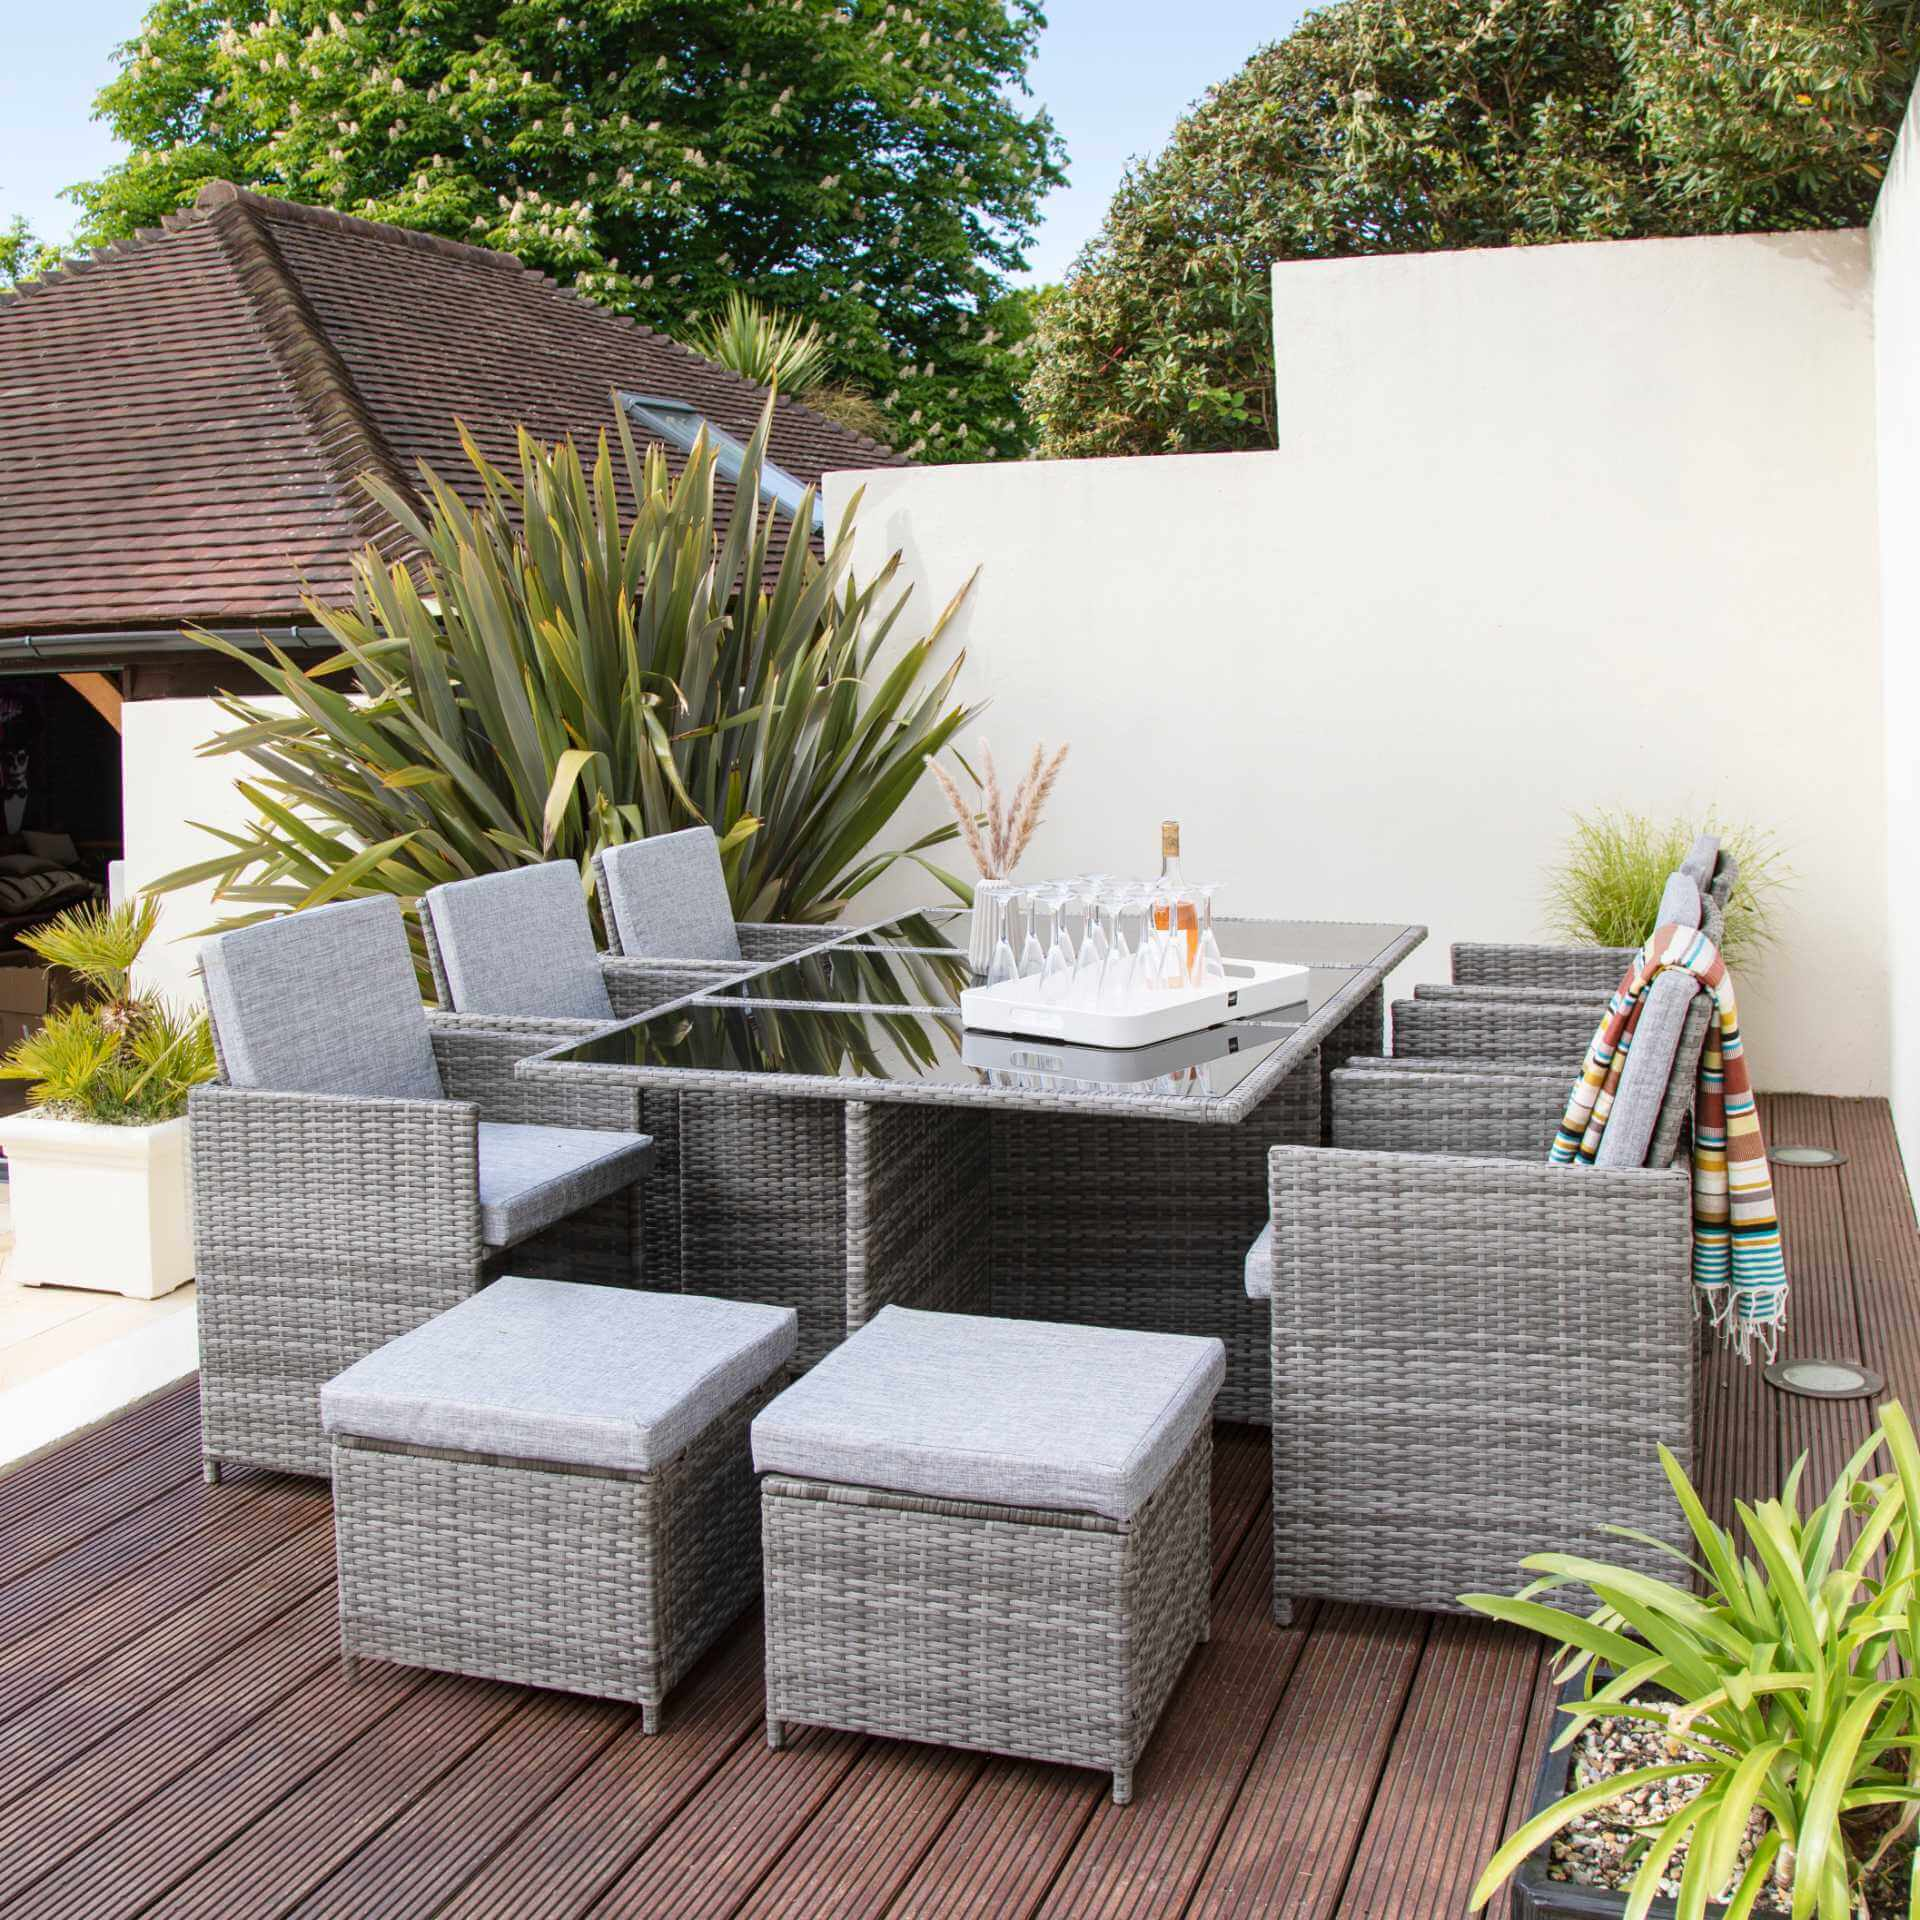 10 Seater Rattan Cube Outdoor Dining Set - Grey Weave - Laura James